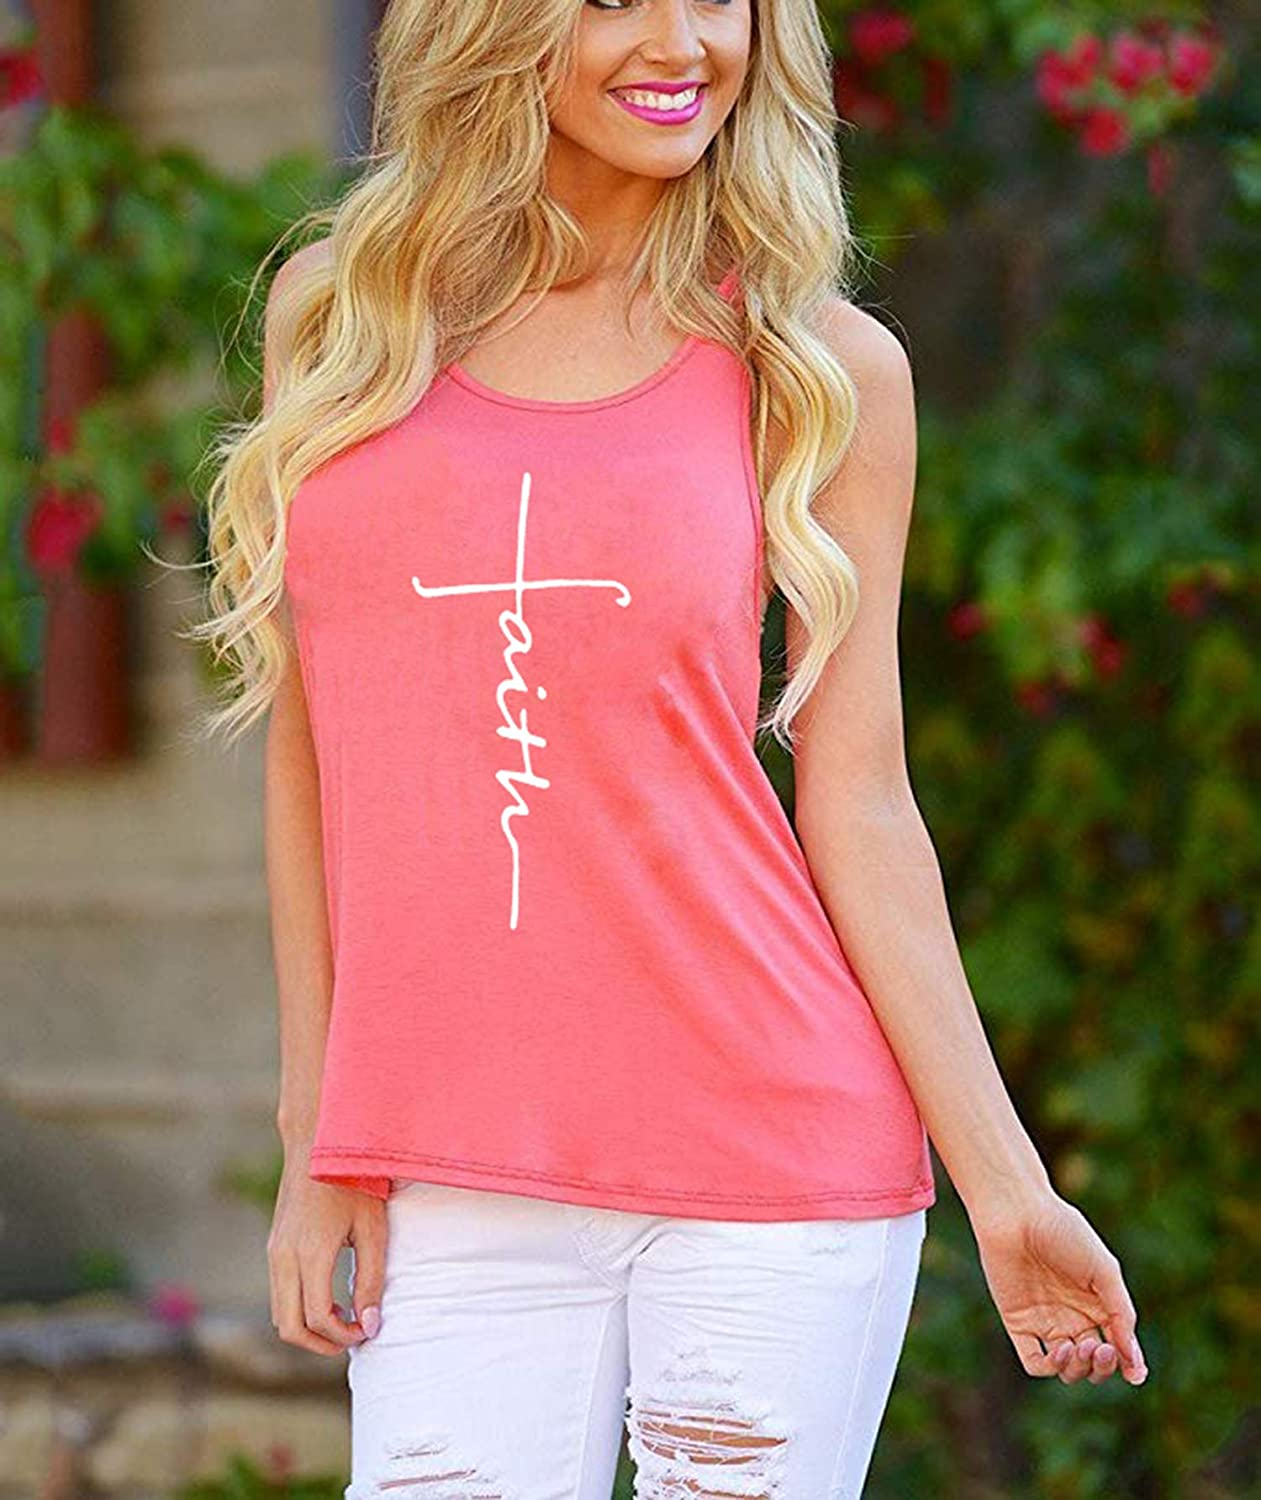 Mansy Womens Casual Faith Letter Printed Graphic Tank Tops Summer Sleeveless Shirts Blouses